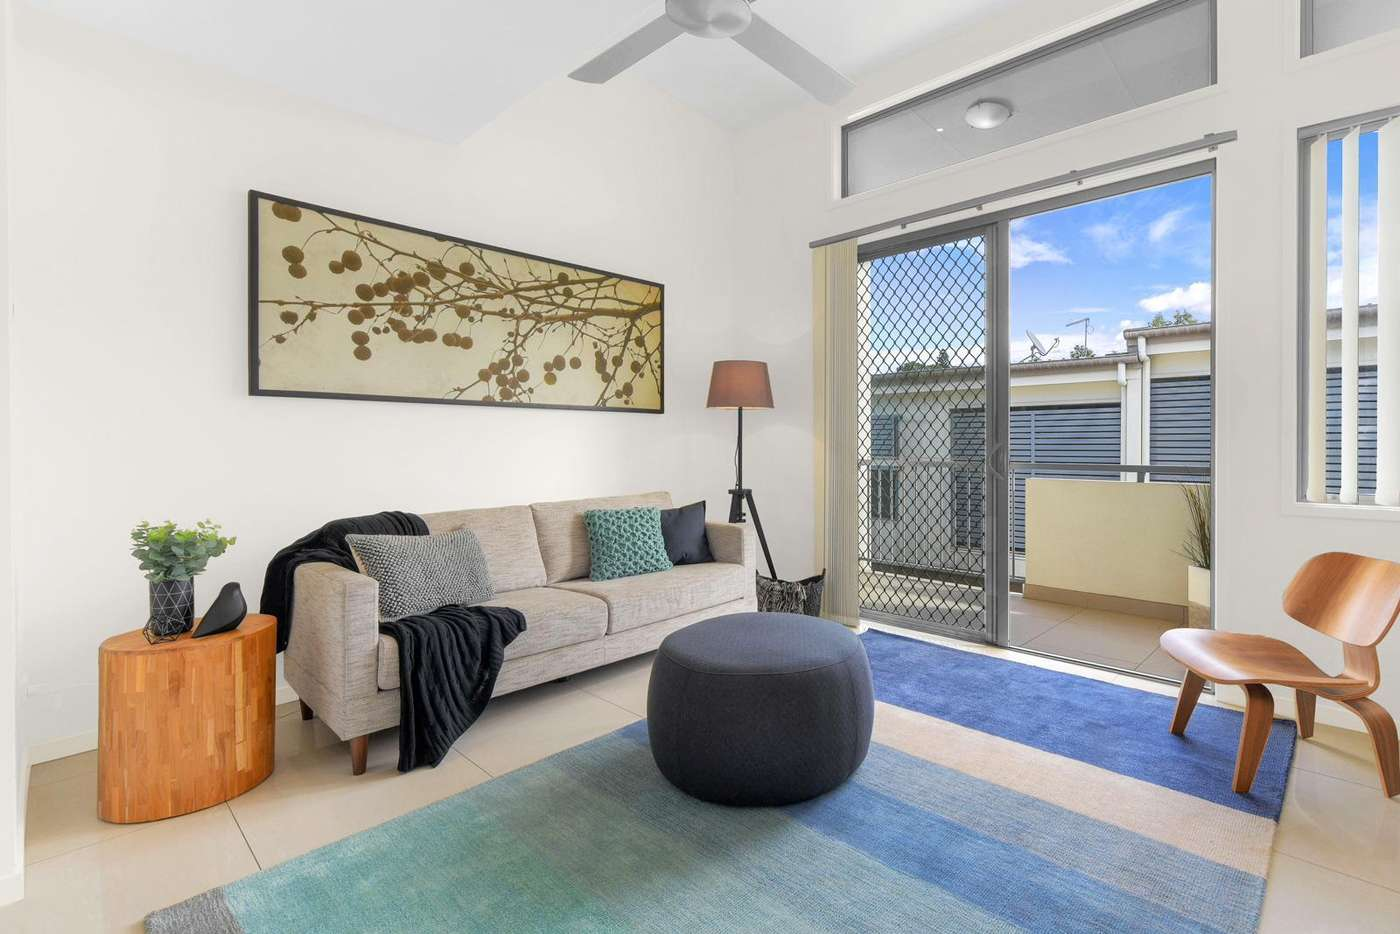 Seventh view of Homely townhouse listing, 8/15 Ainslie Street, Alderley QLD 4051